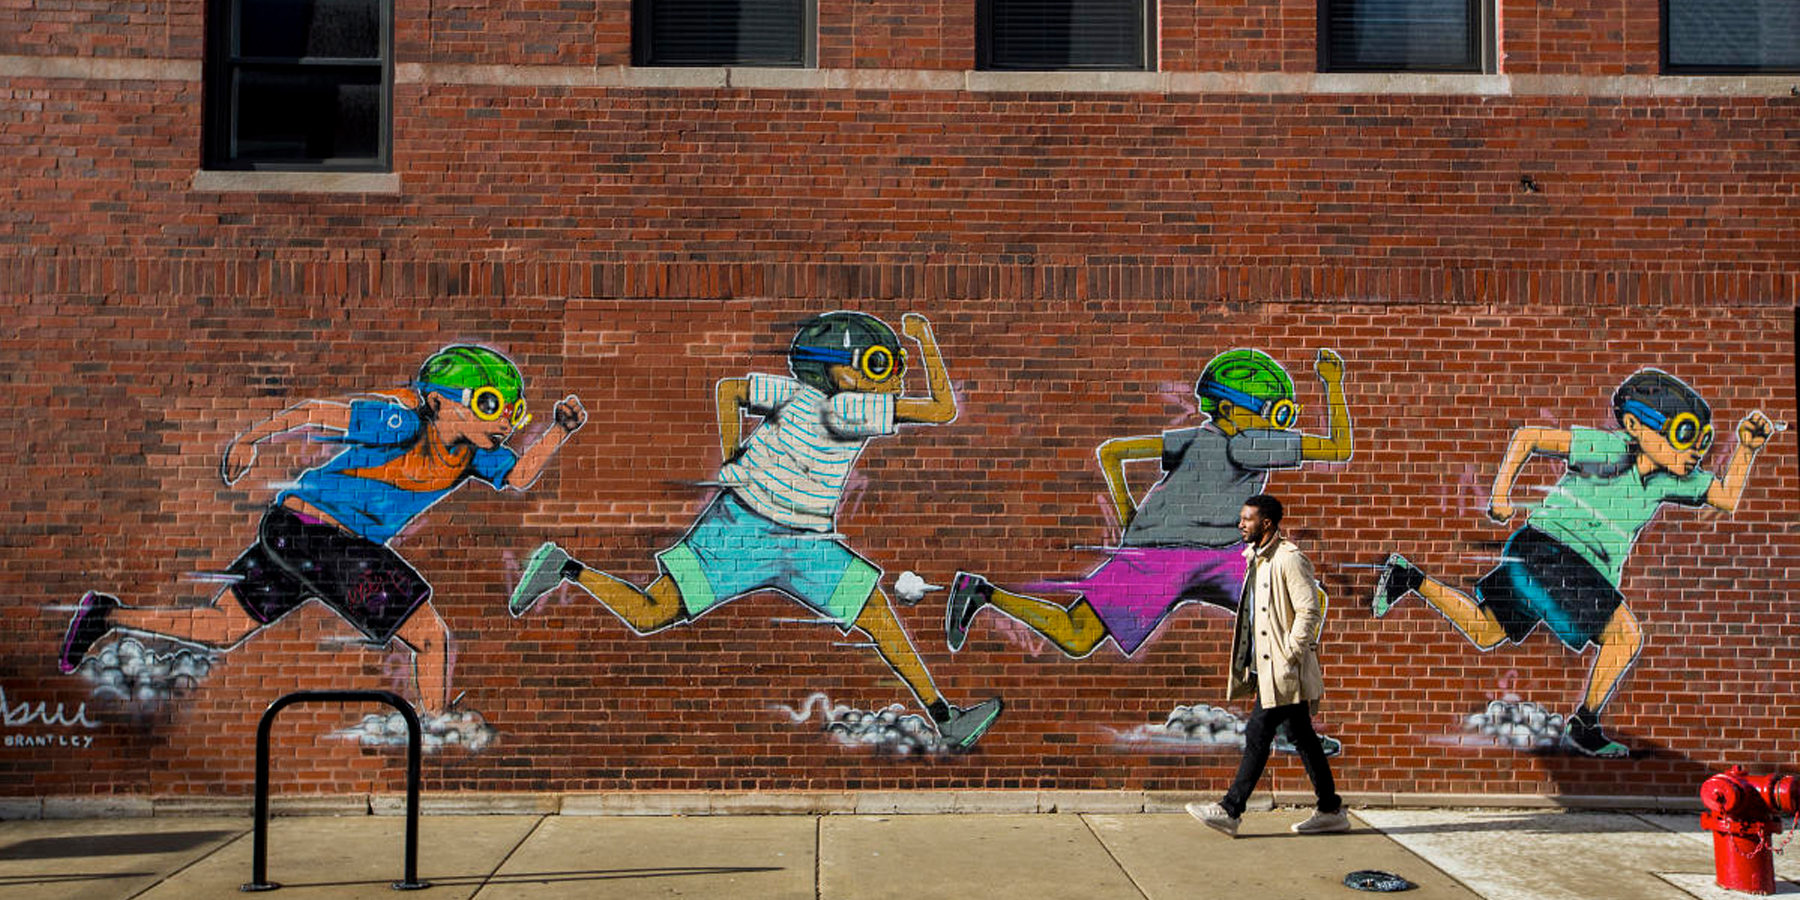 Chicago Running Street Art